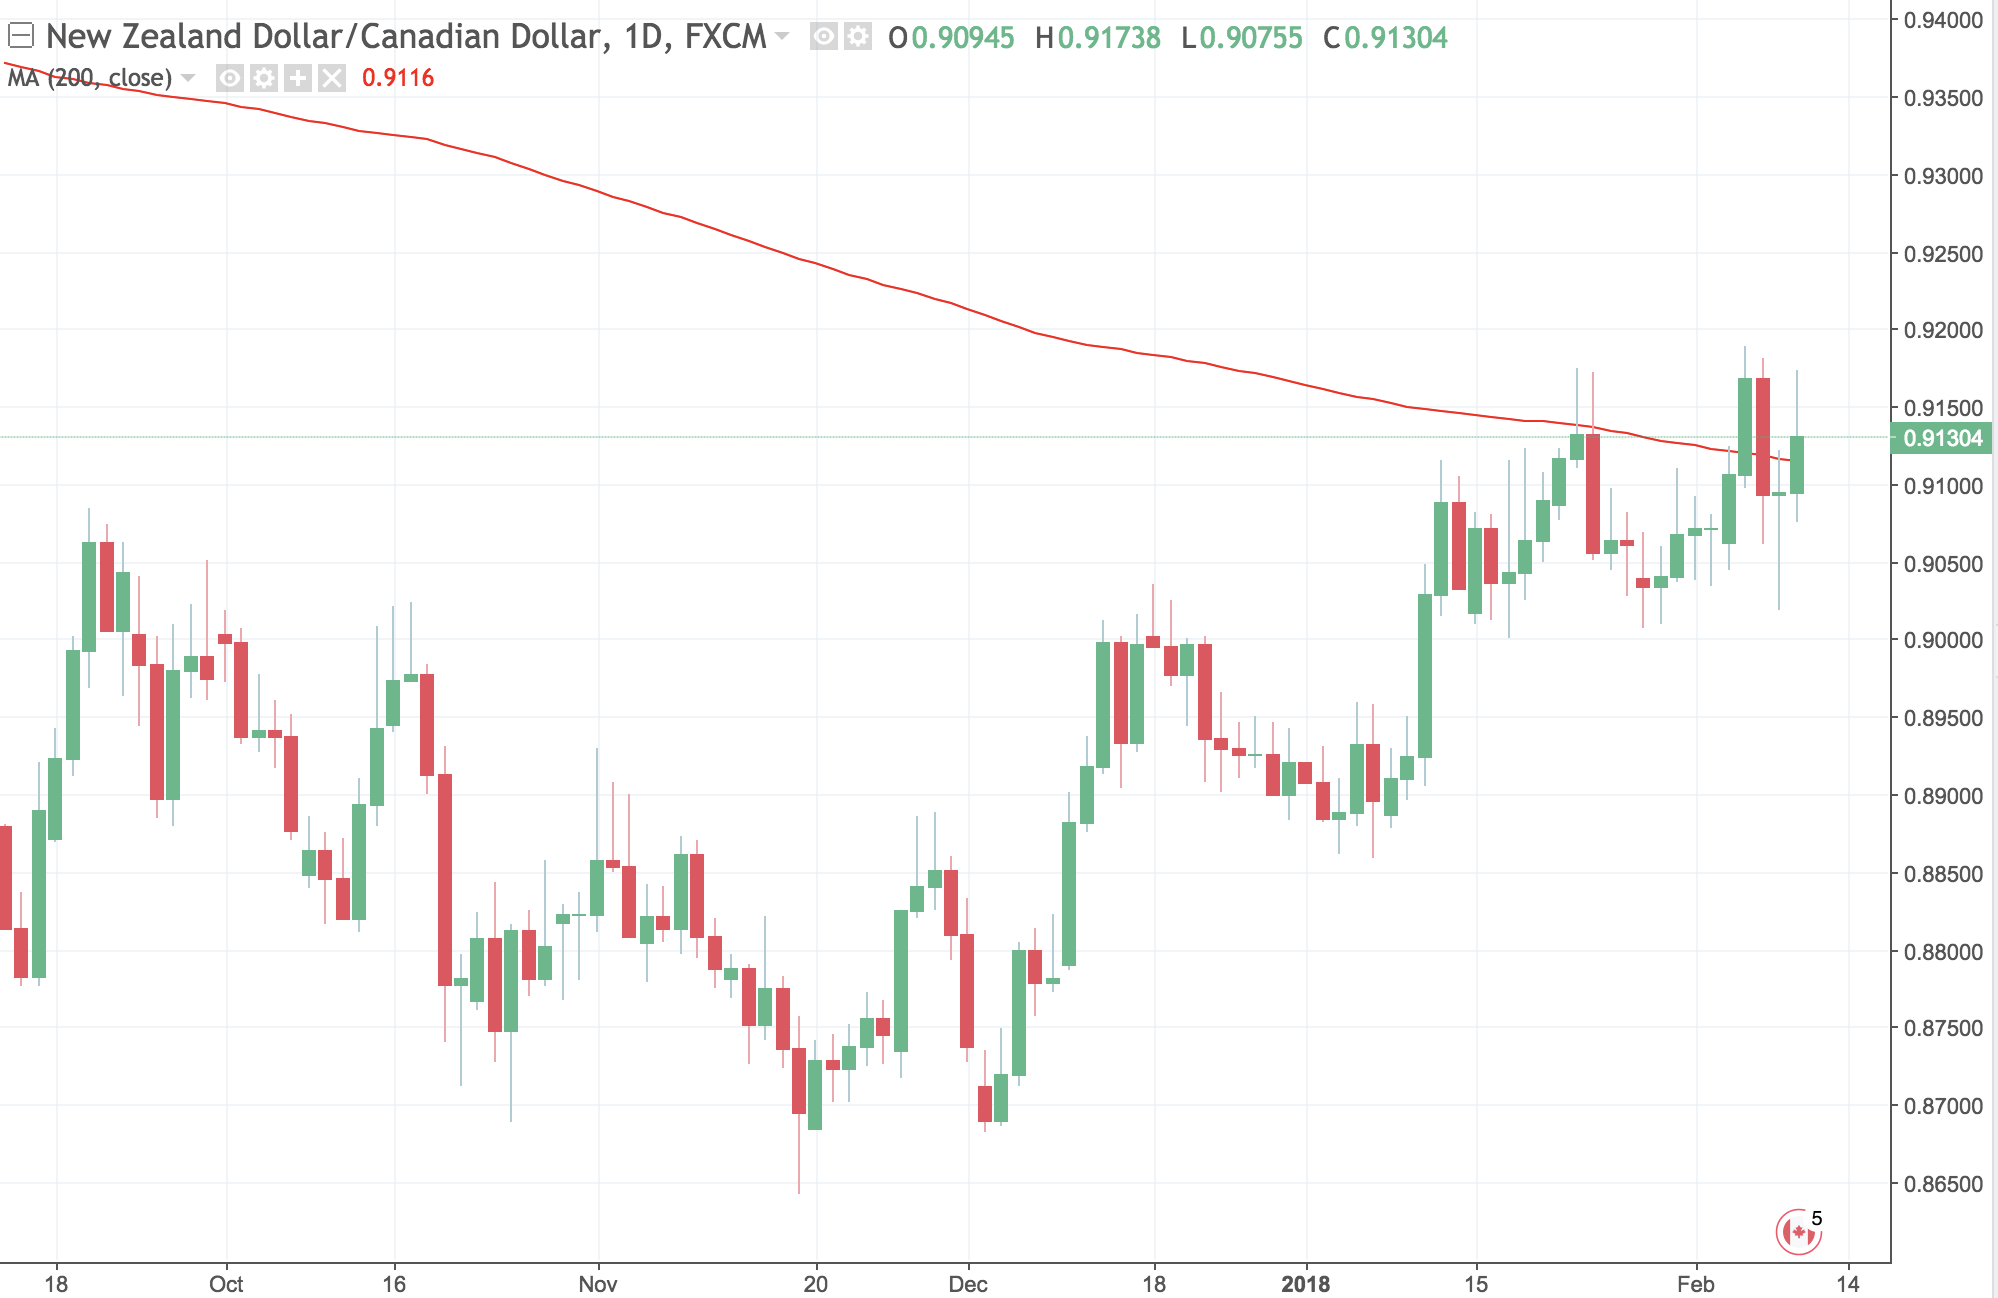 NZD/CAD Back to 92 Cents?